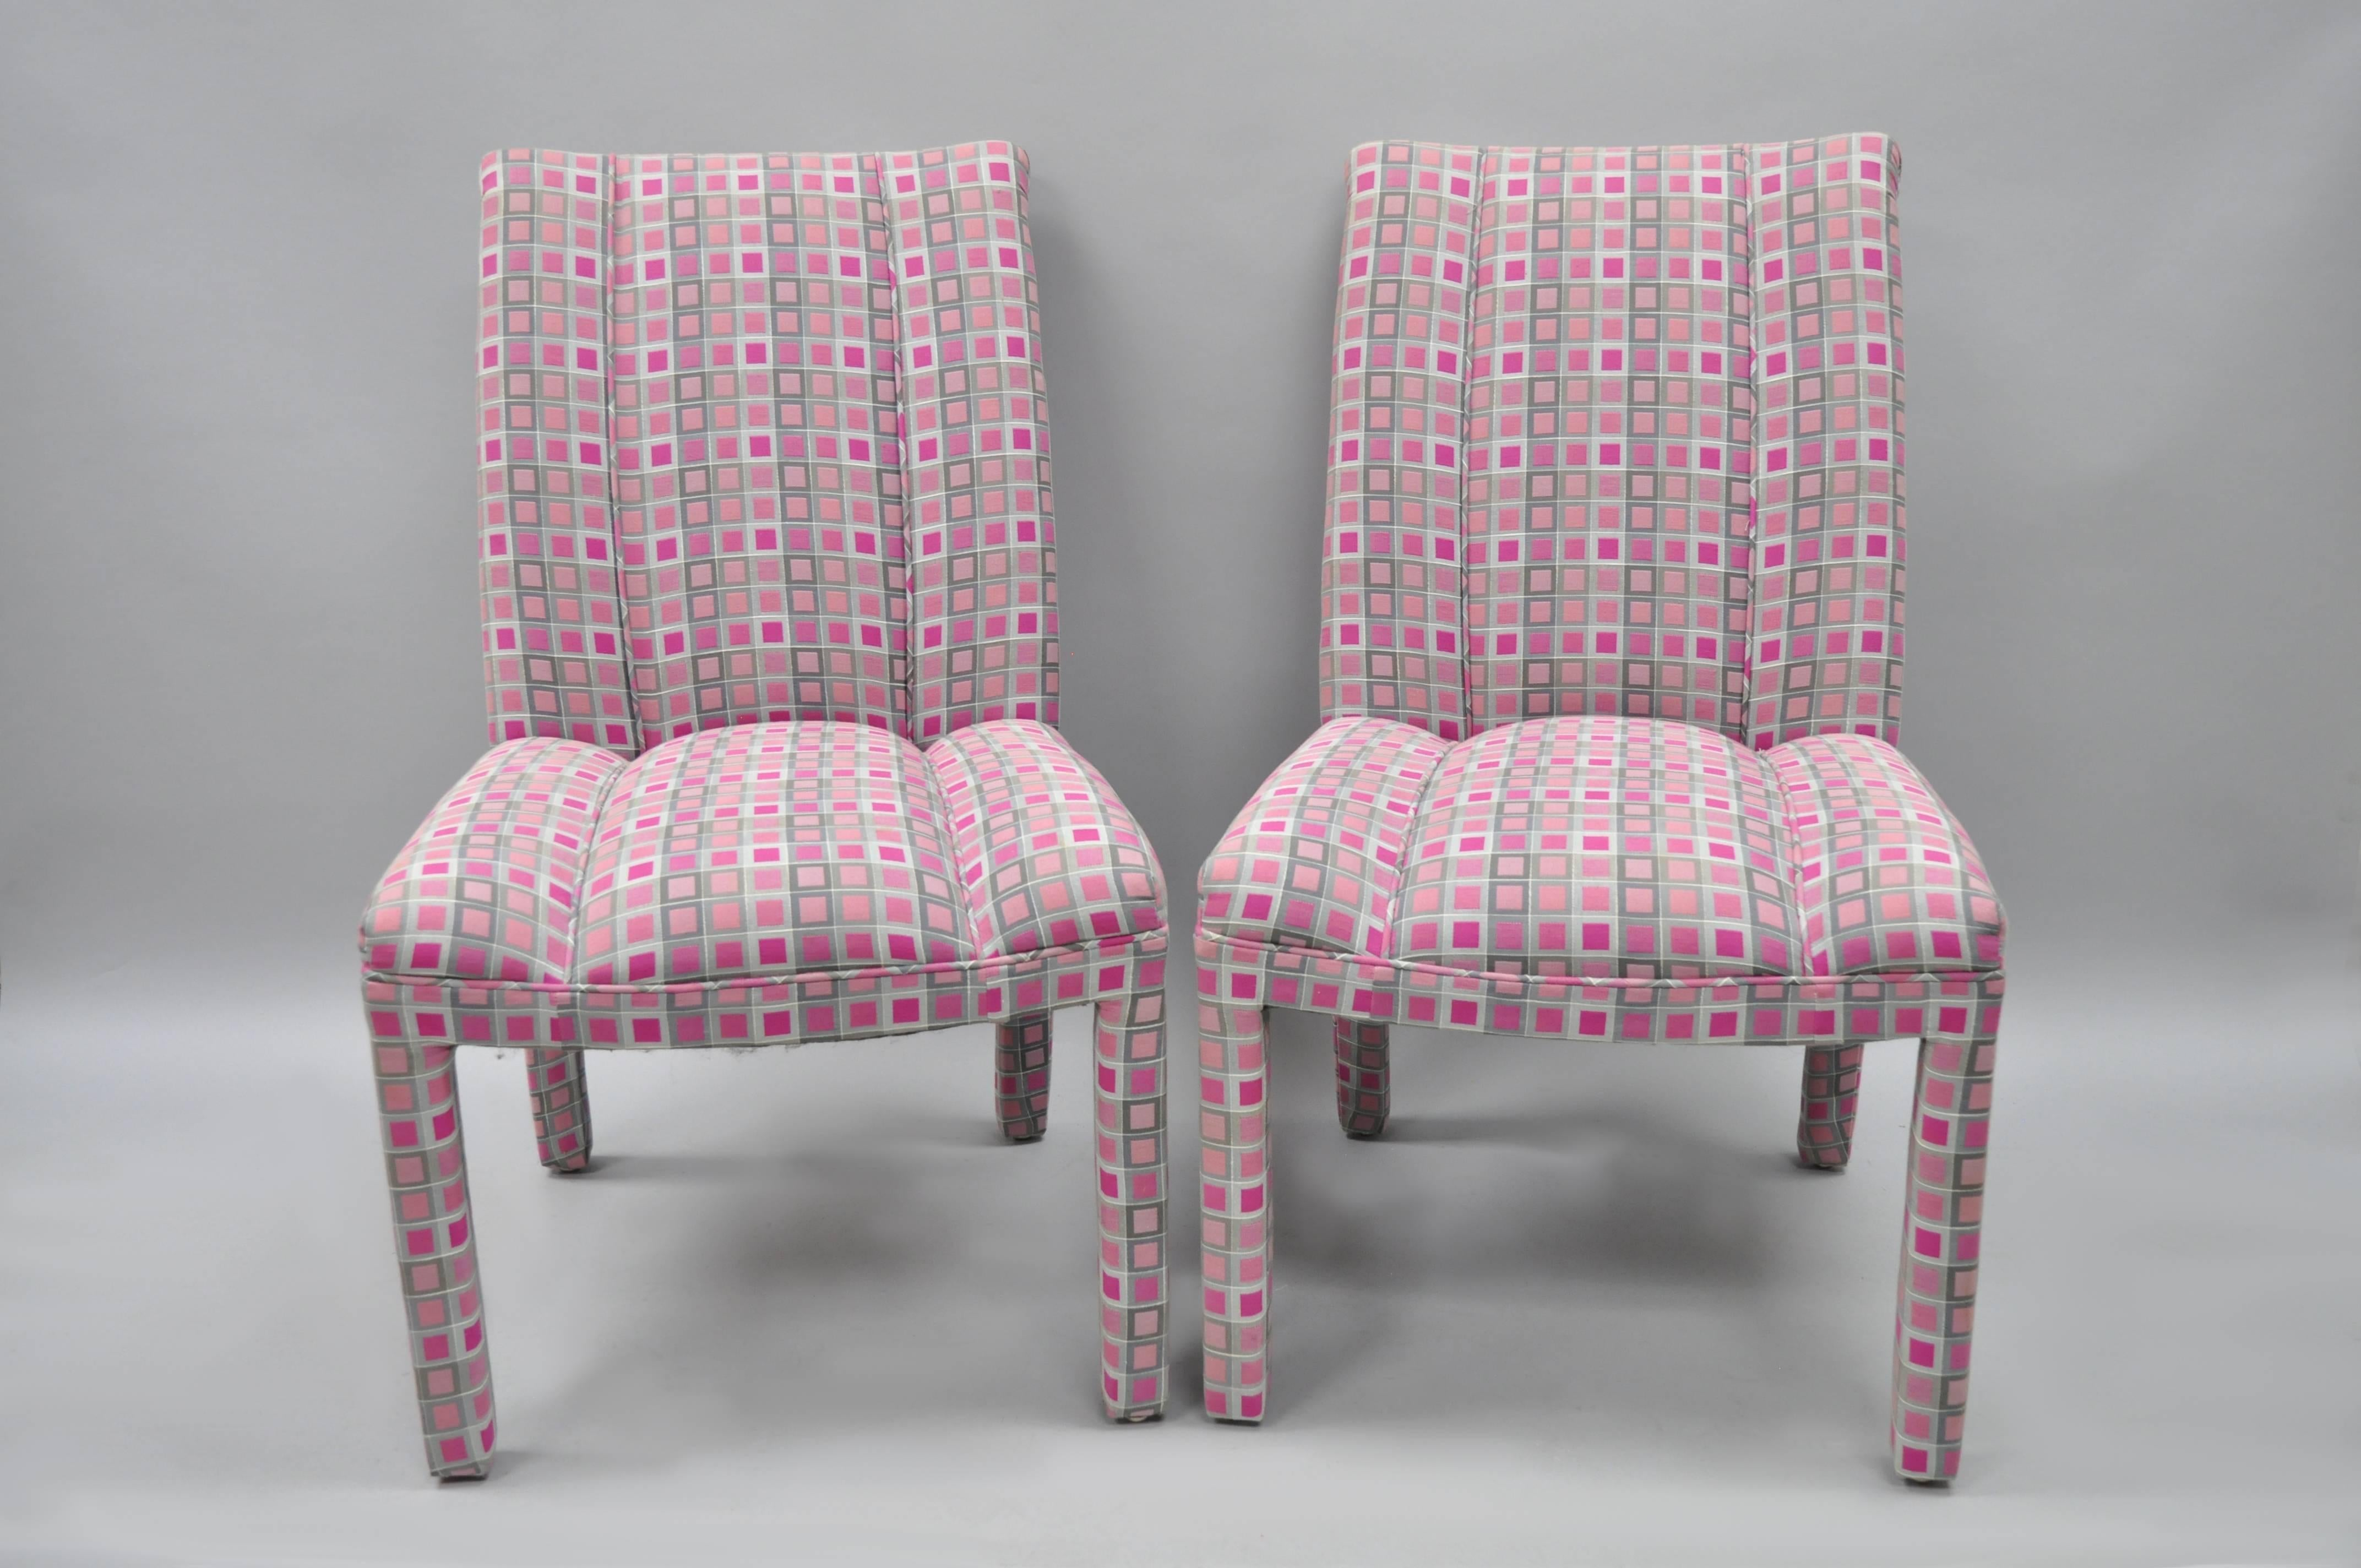 Delicieux Set Of Six Pink And Sliver Fully Upholstered Parsons Style Dining Chairs In  The Hollywood Regency